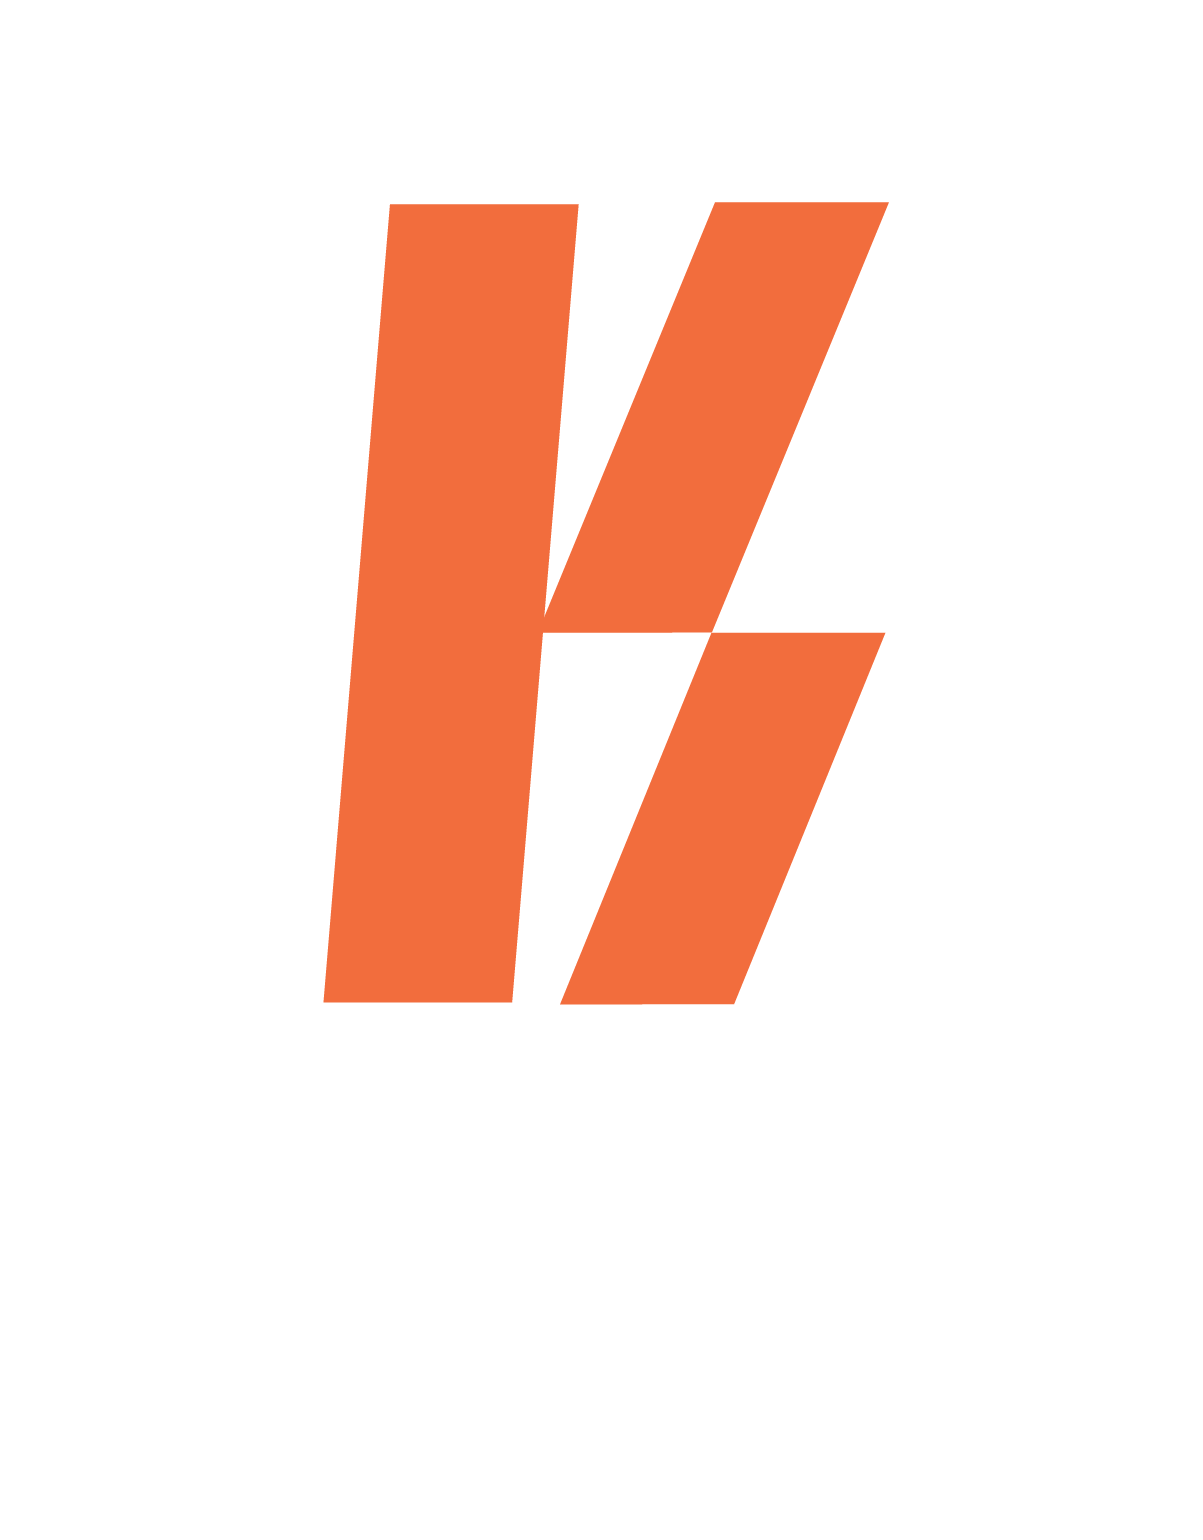 KElectric_logo_RGB_White_FilledK_Orange.png